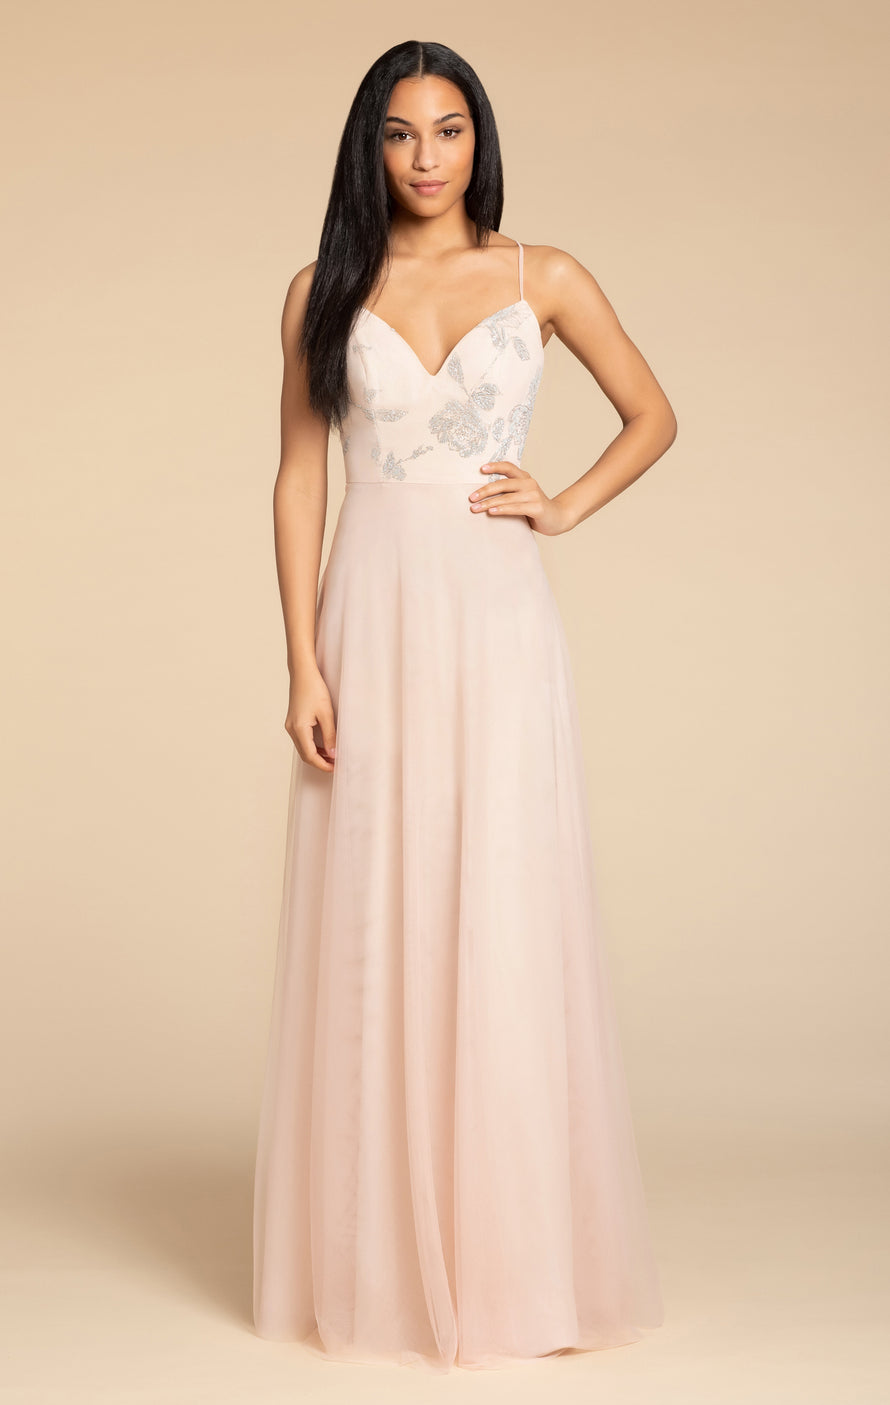 Hayley Paige Occasions Long Bridesmaid Dress - 5903 front